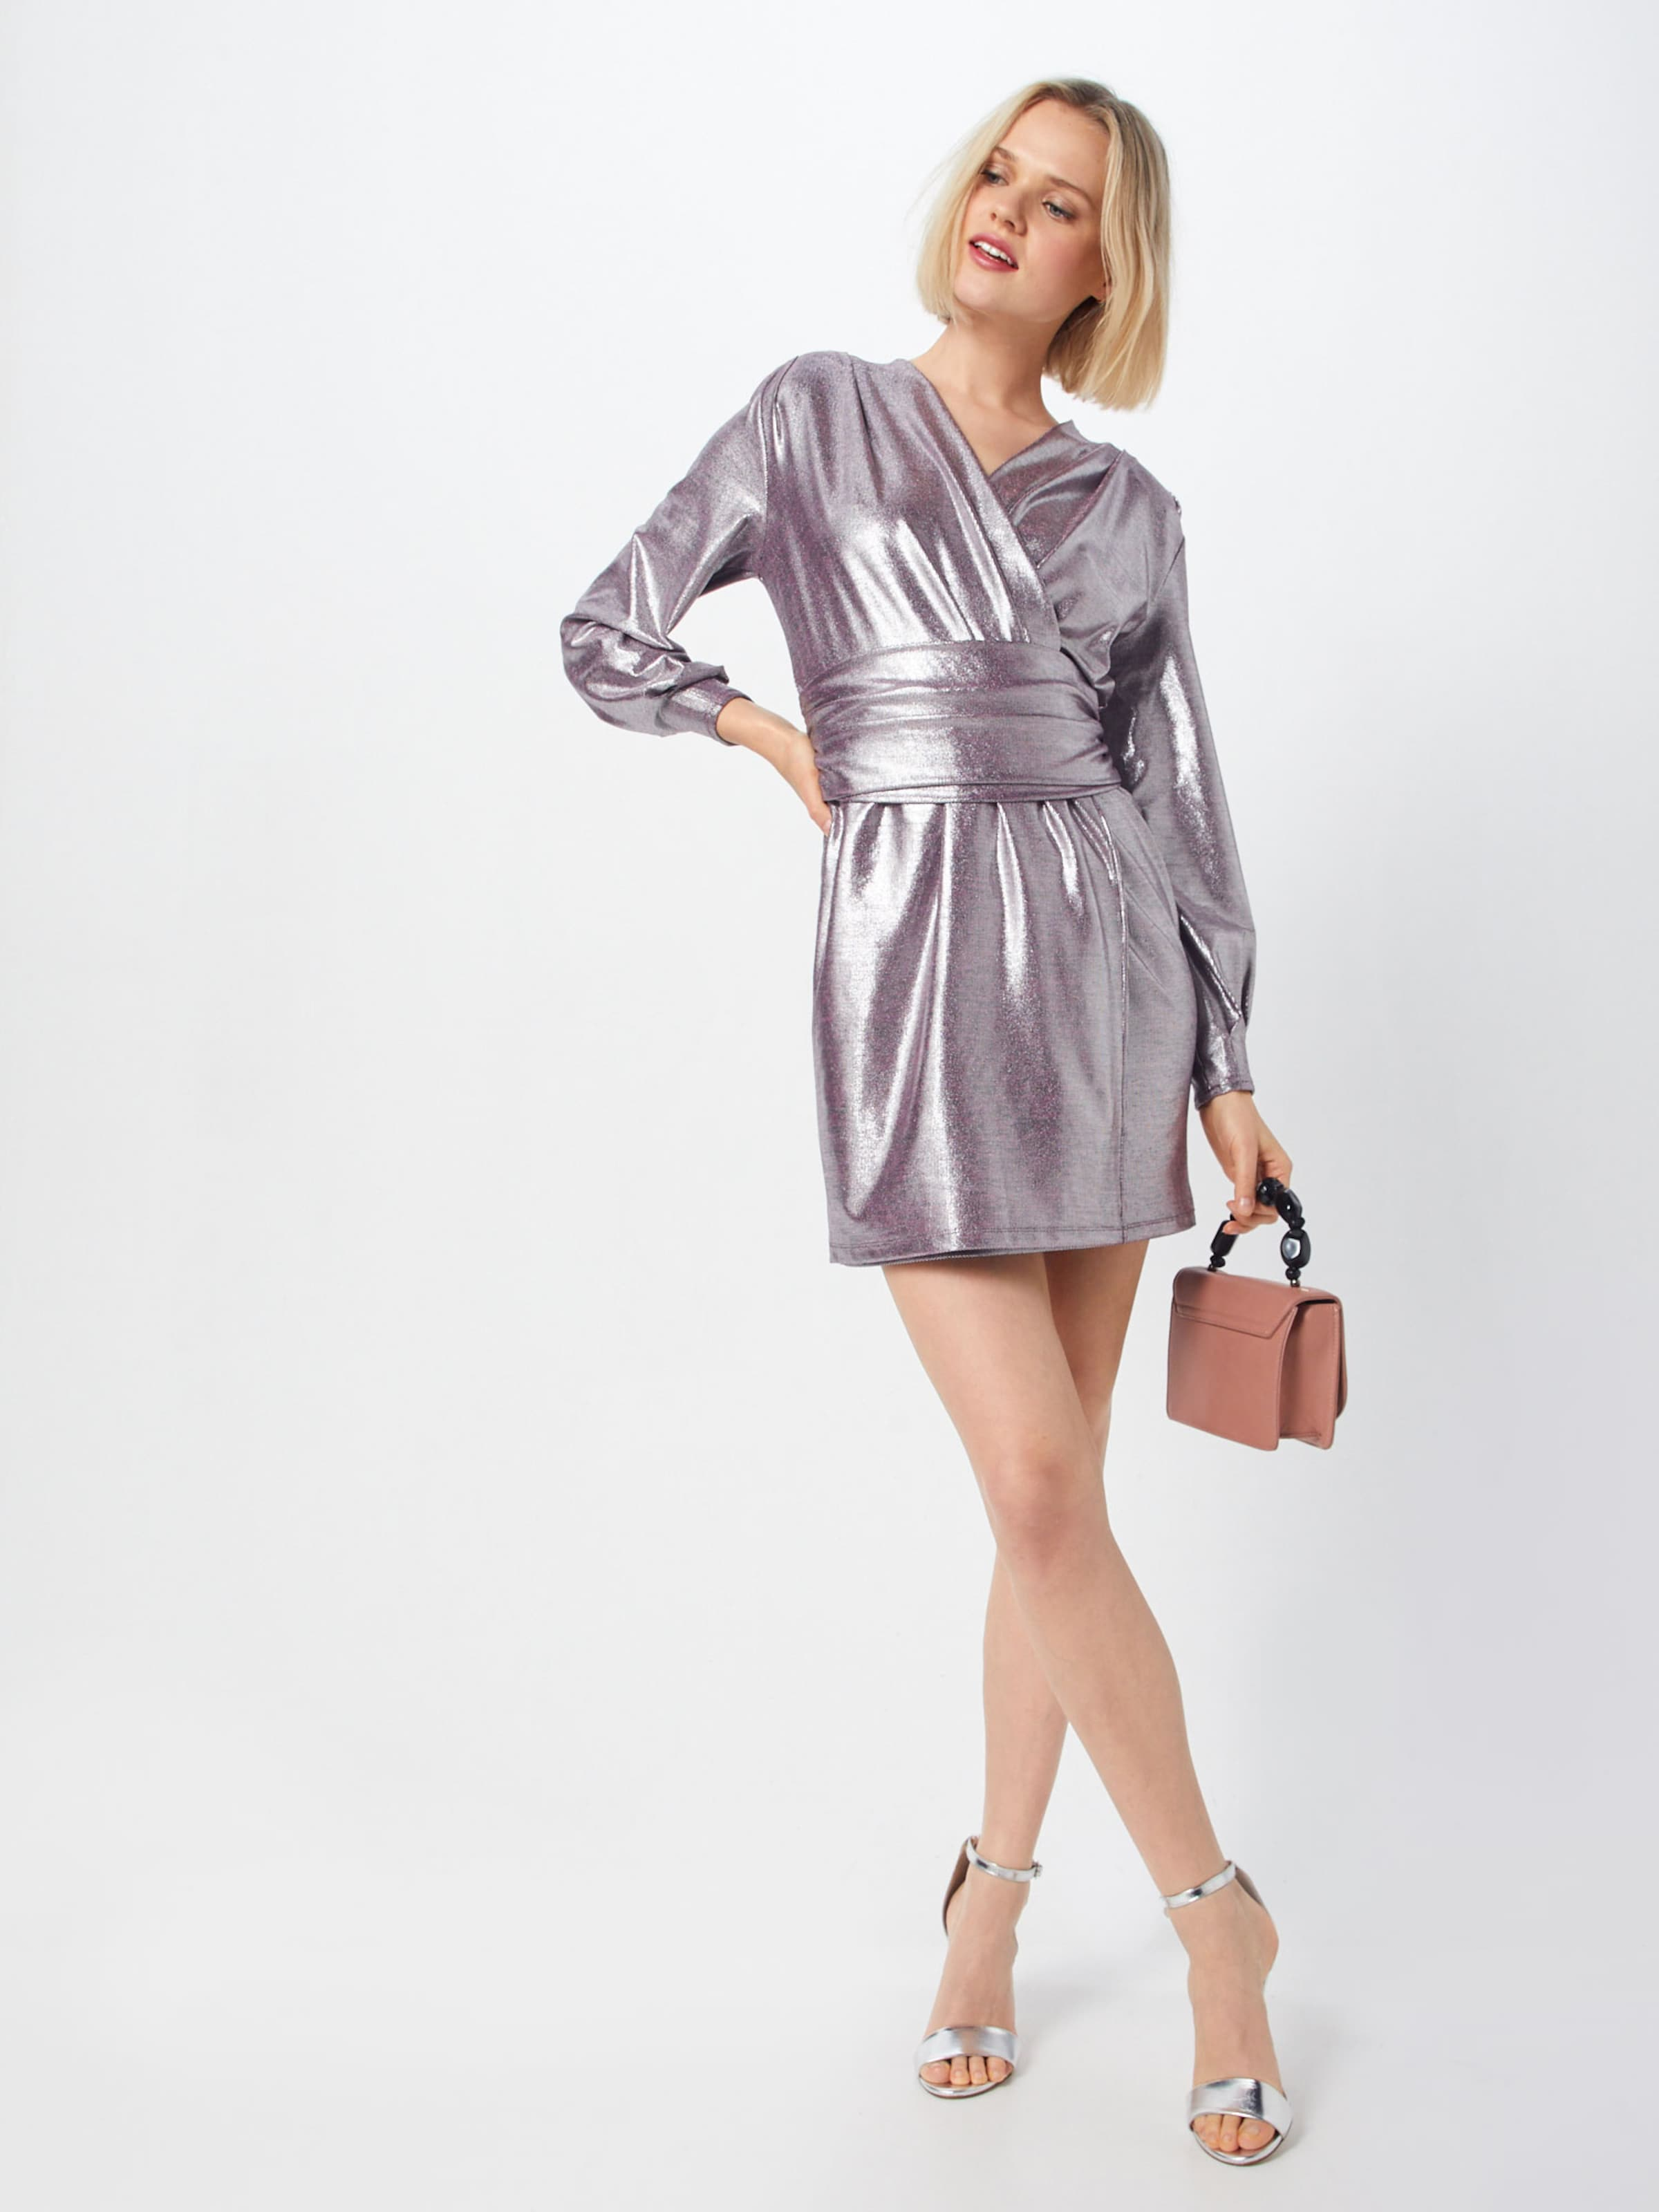 'cara' In For About You Silber Michalsky Kleid 5ARL34j